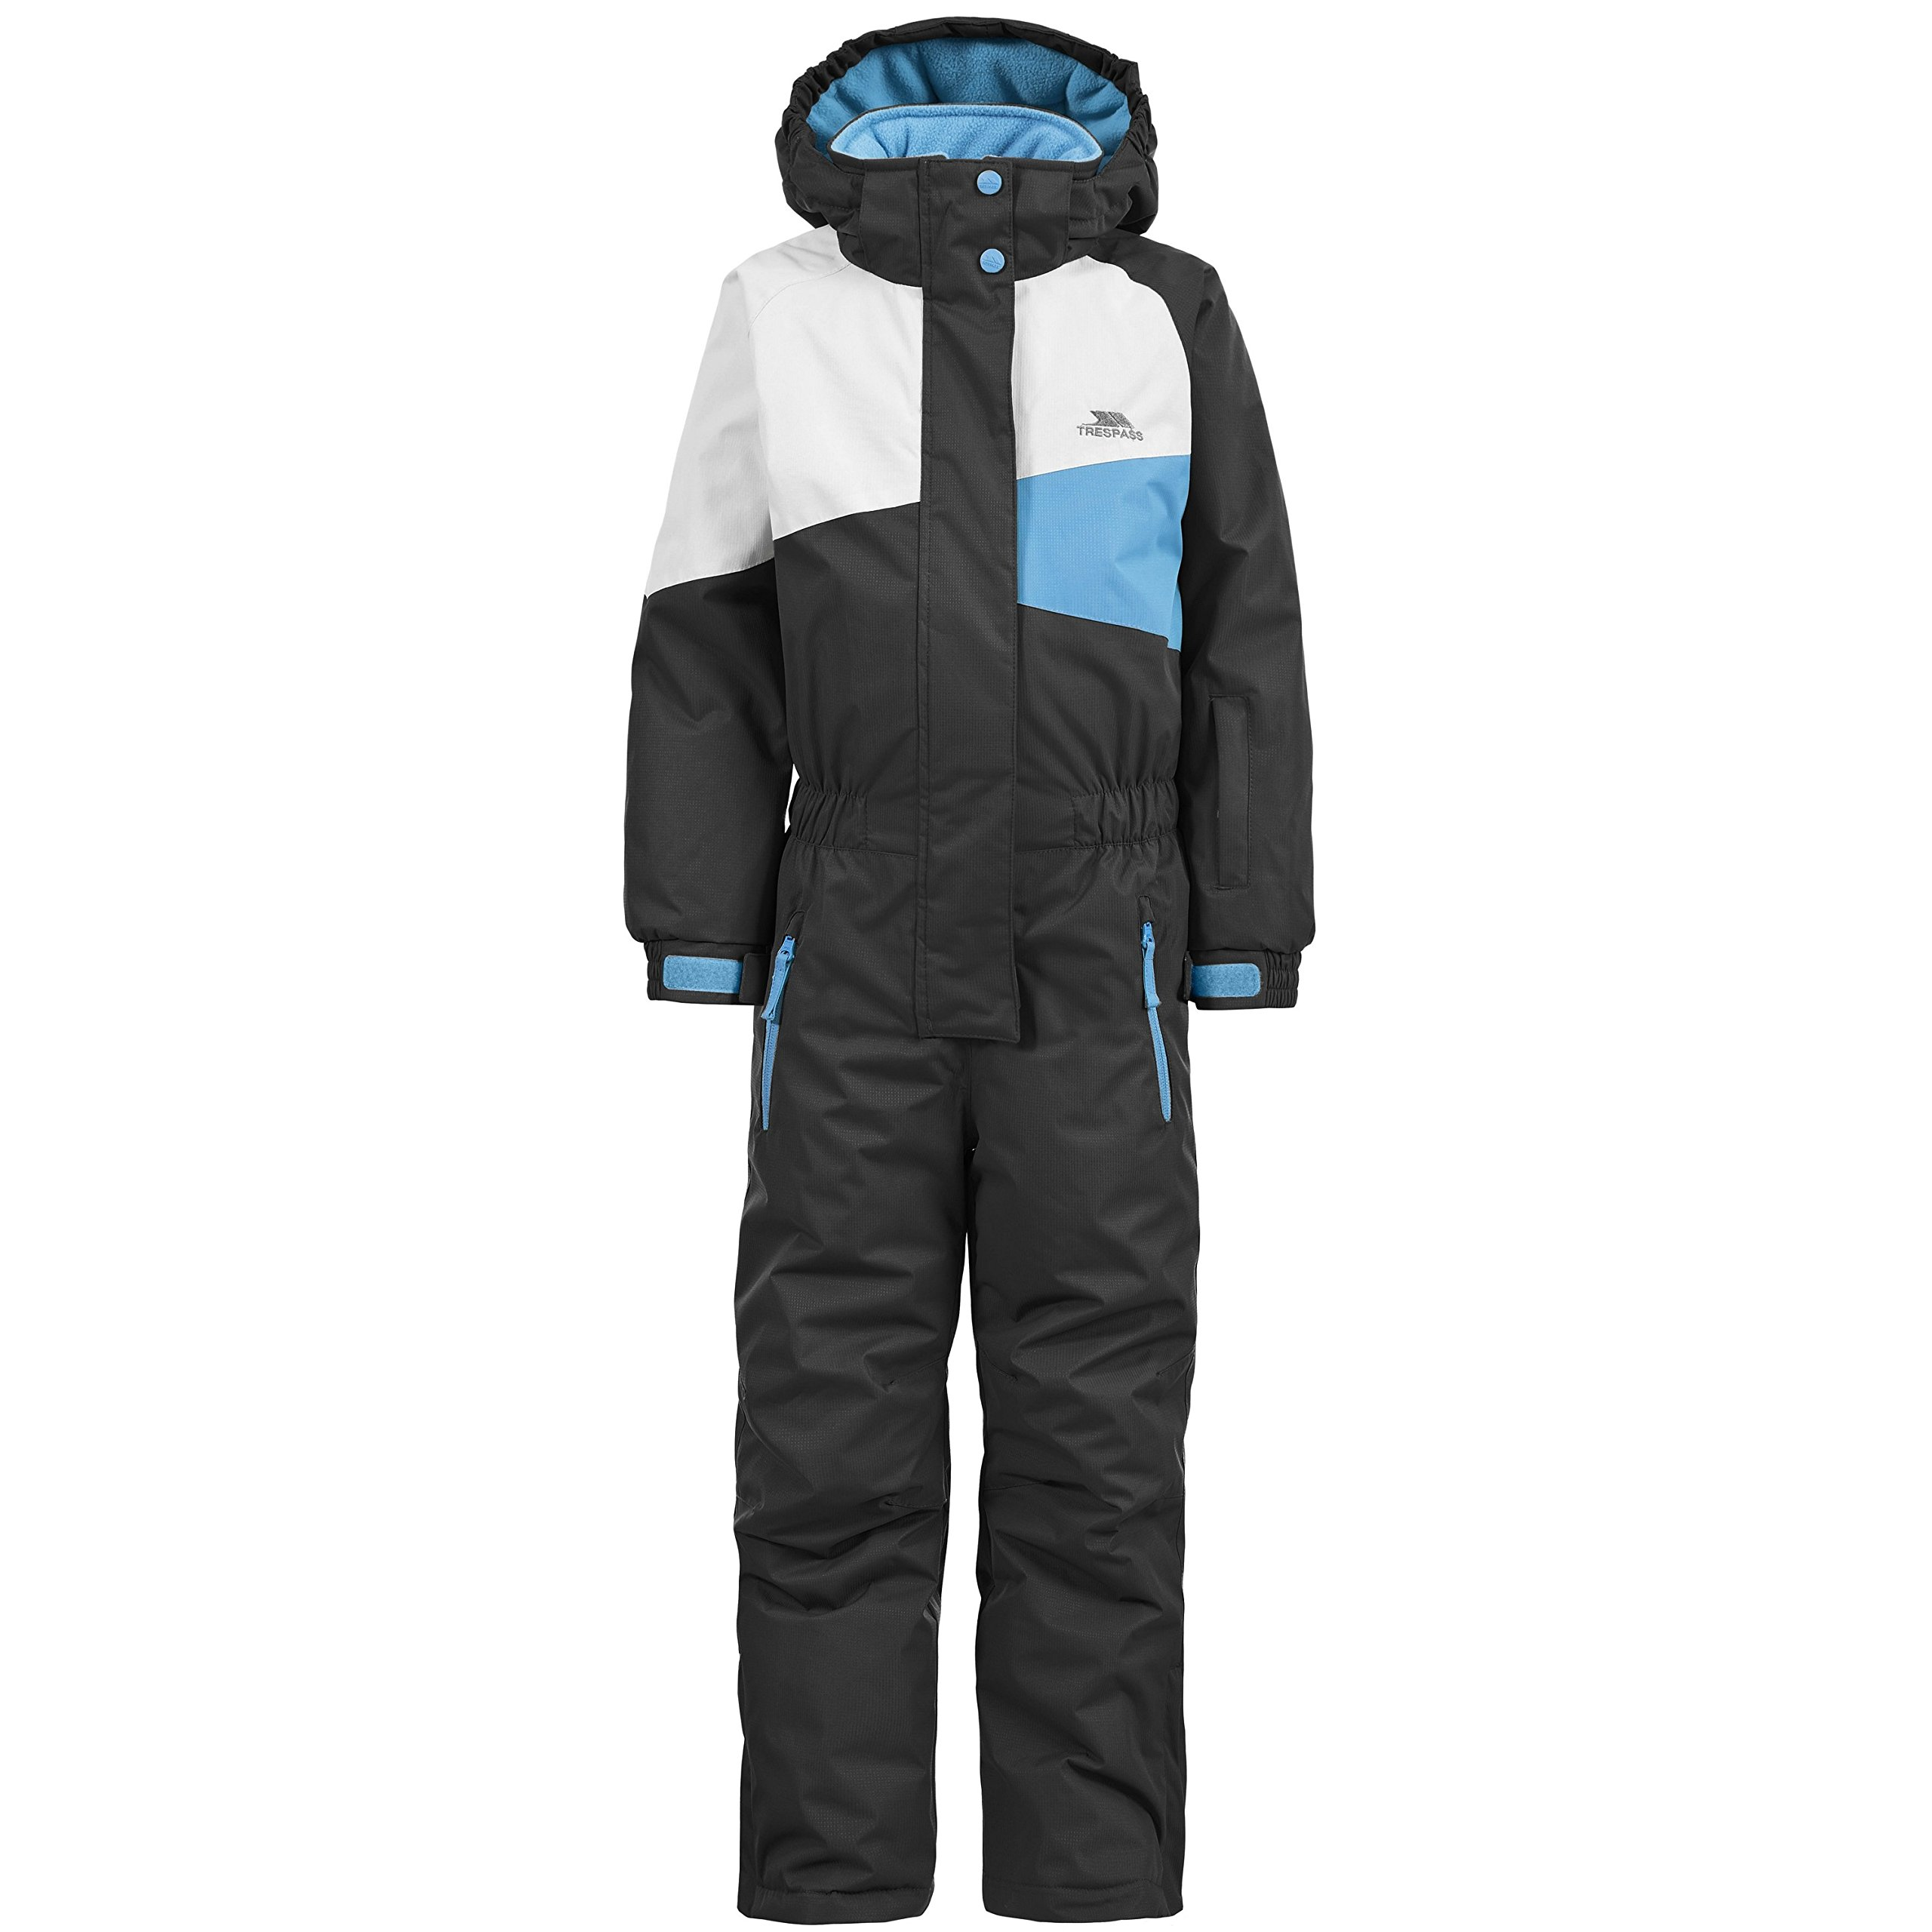 Combined-arms protective kit (OZK): raincoat, shoe covers, overalls. Individual protection means